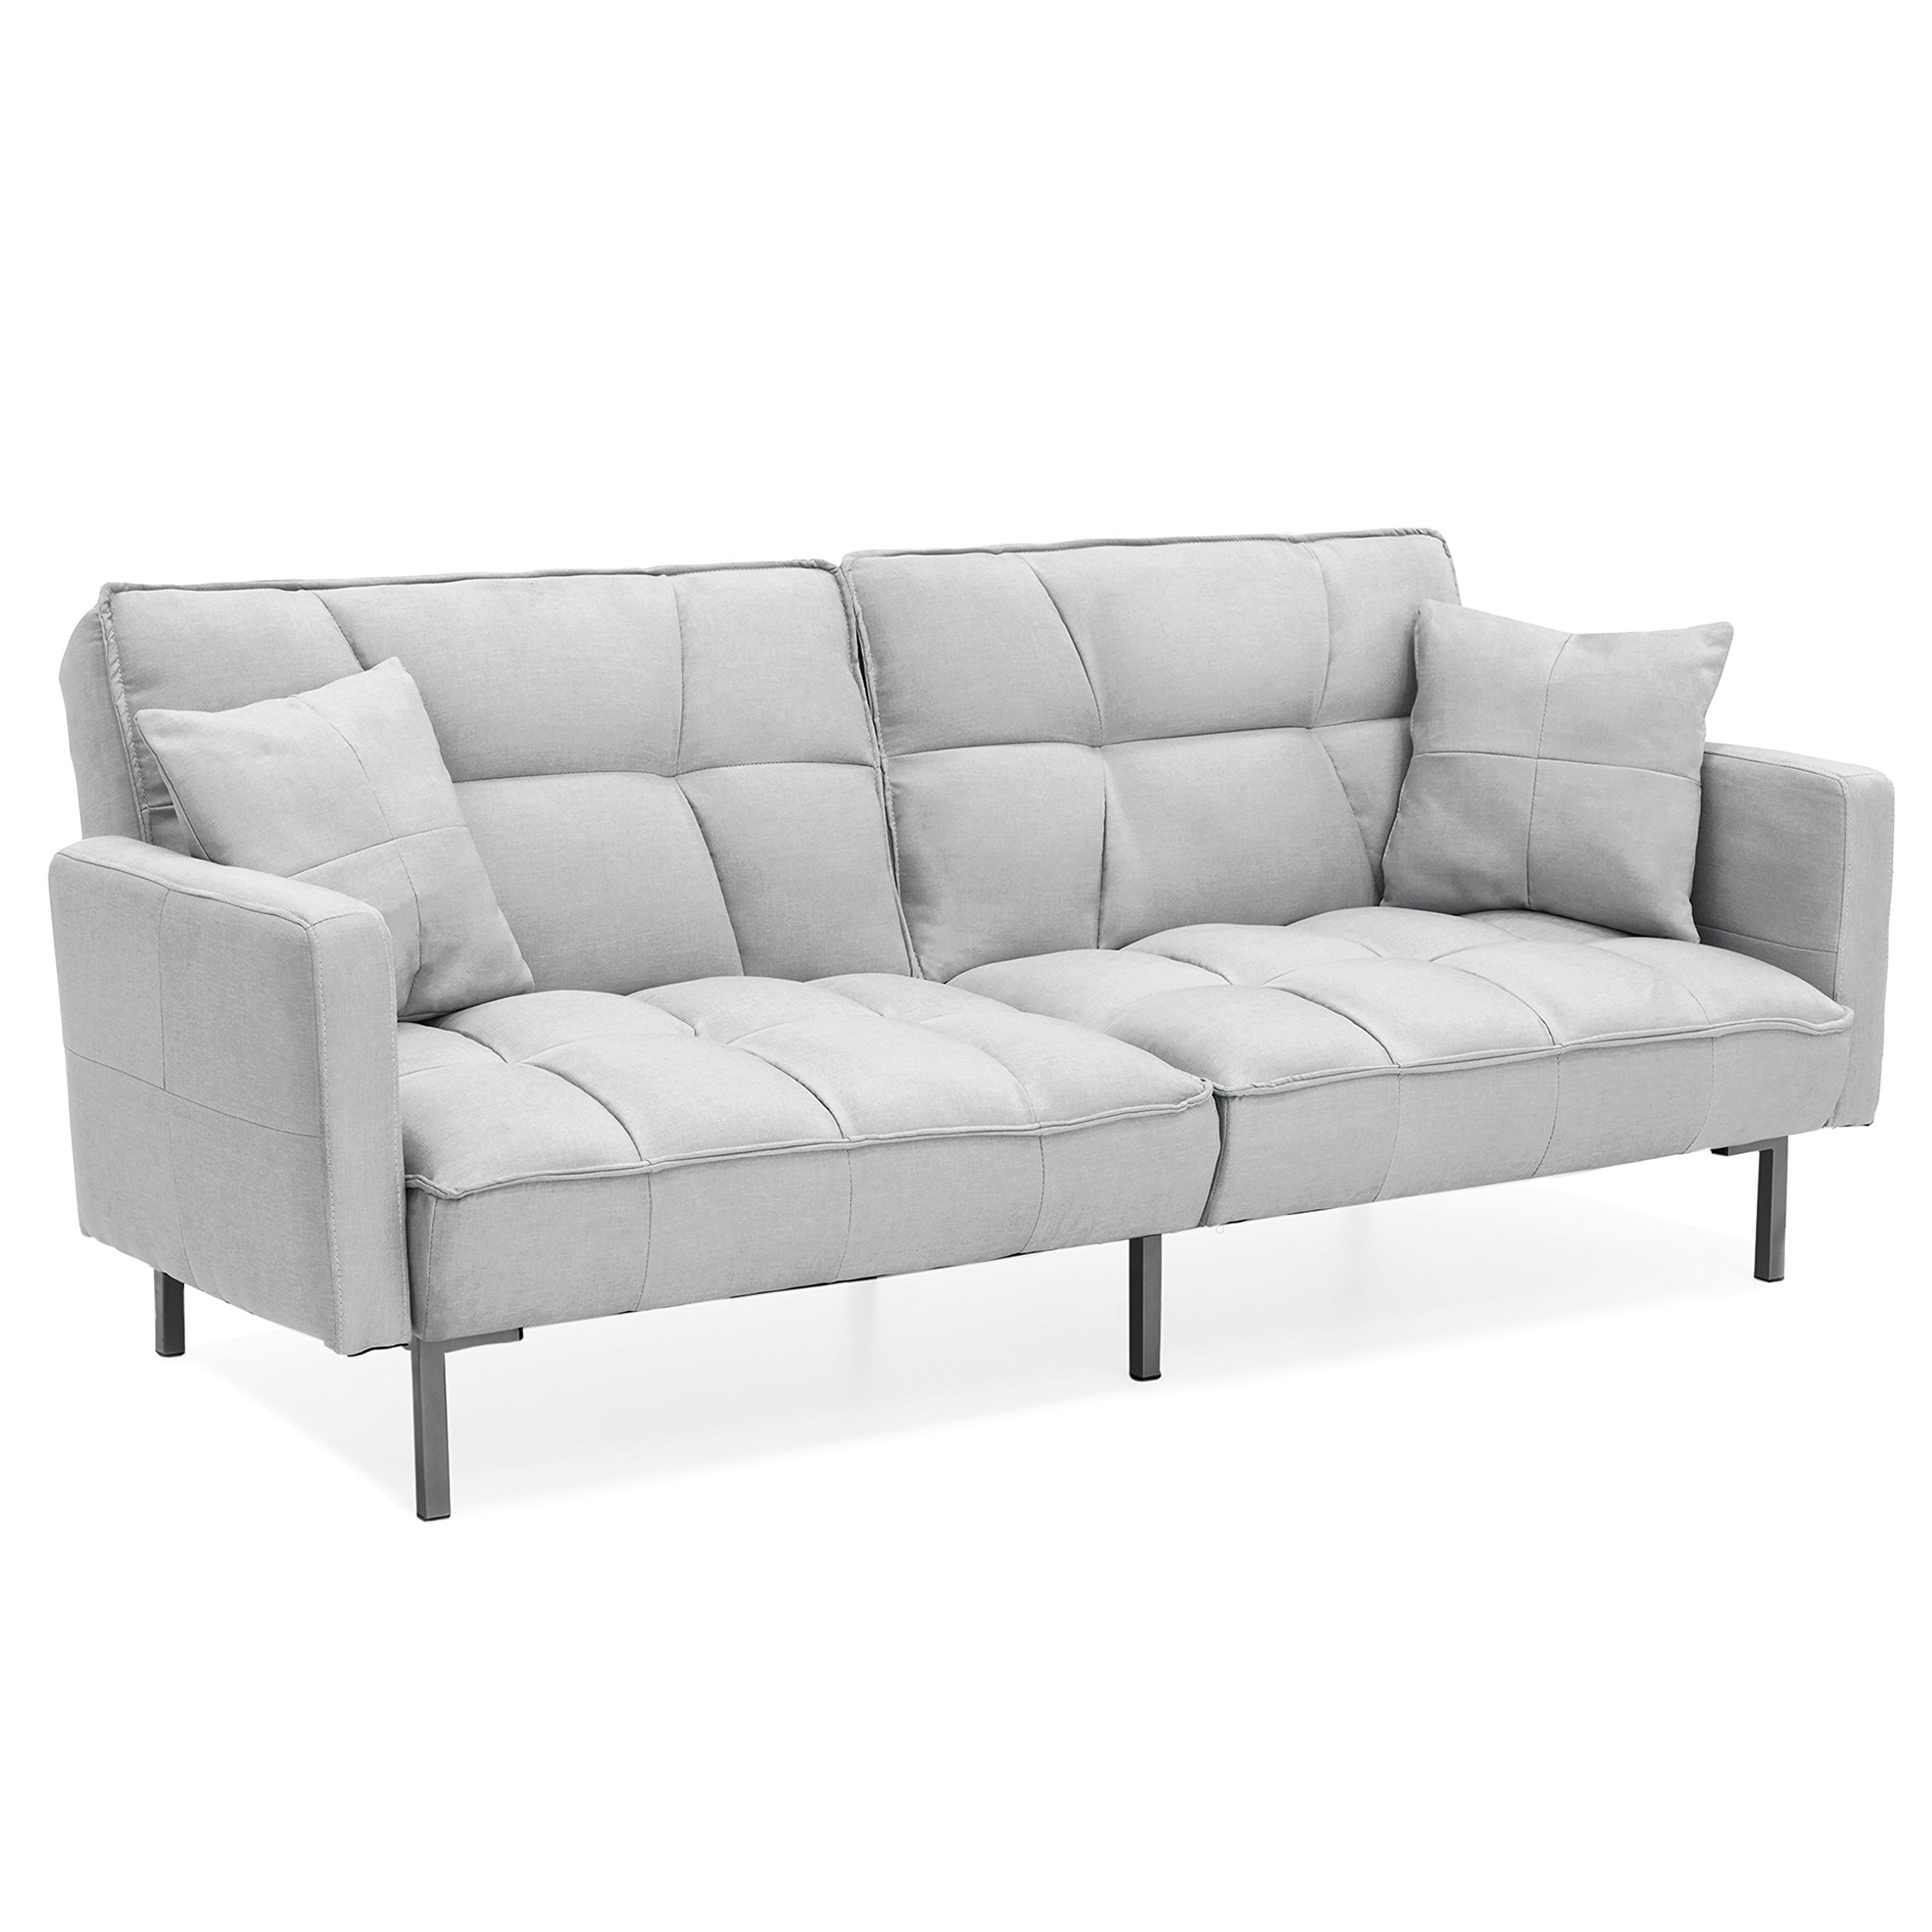 Best Choice Products Home Furniture Convertible Linen Tufted Splitback Futon Couch W/ Pillows (Light Sea Foam Grey)